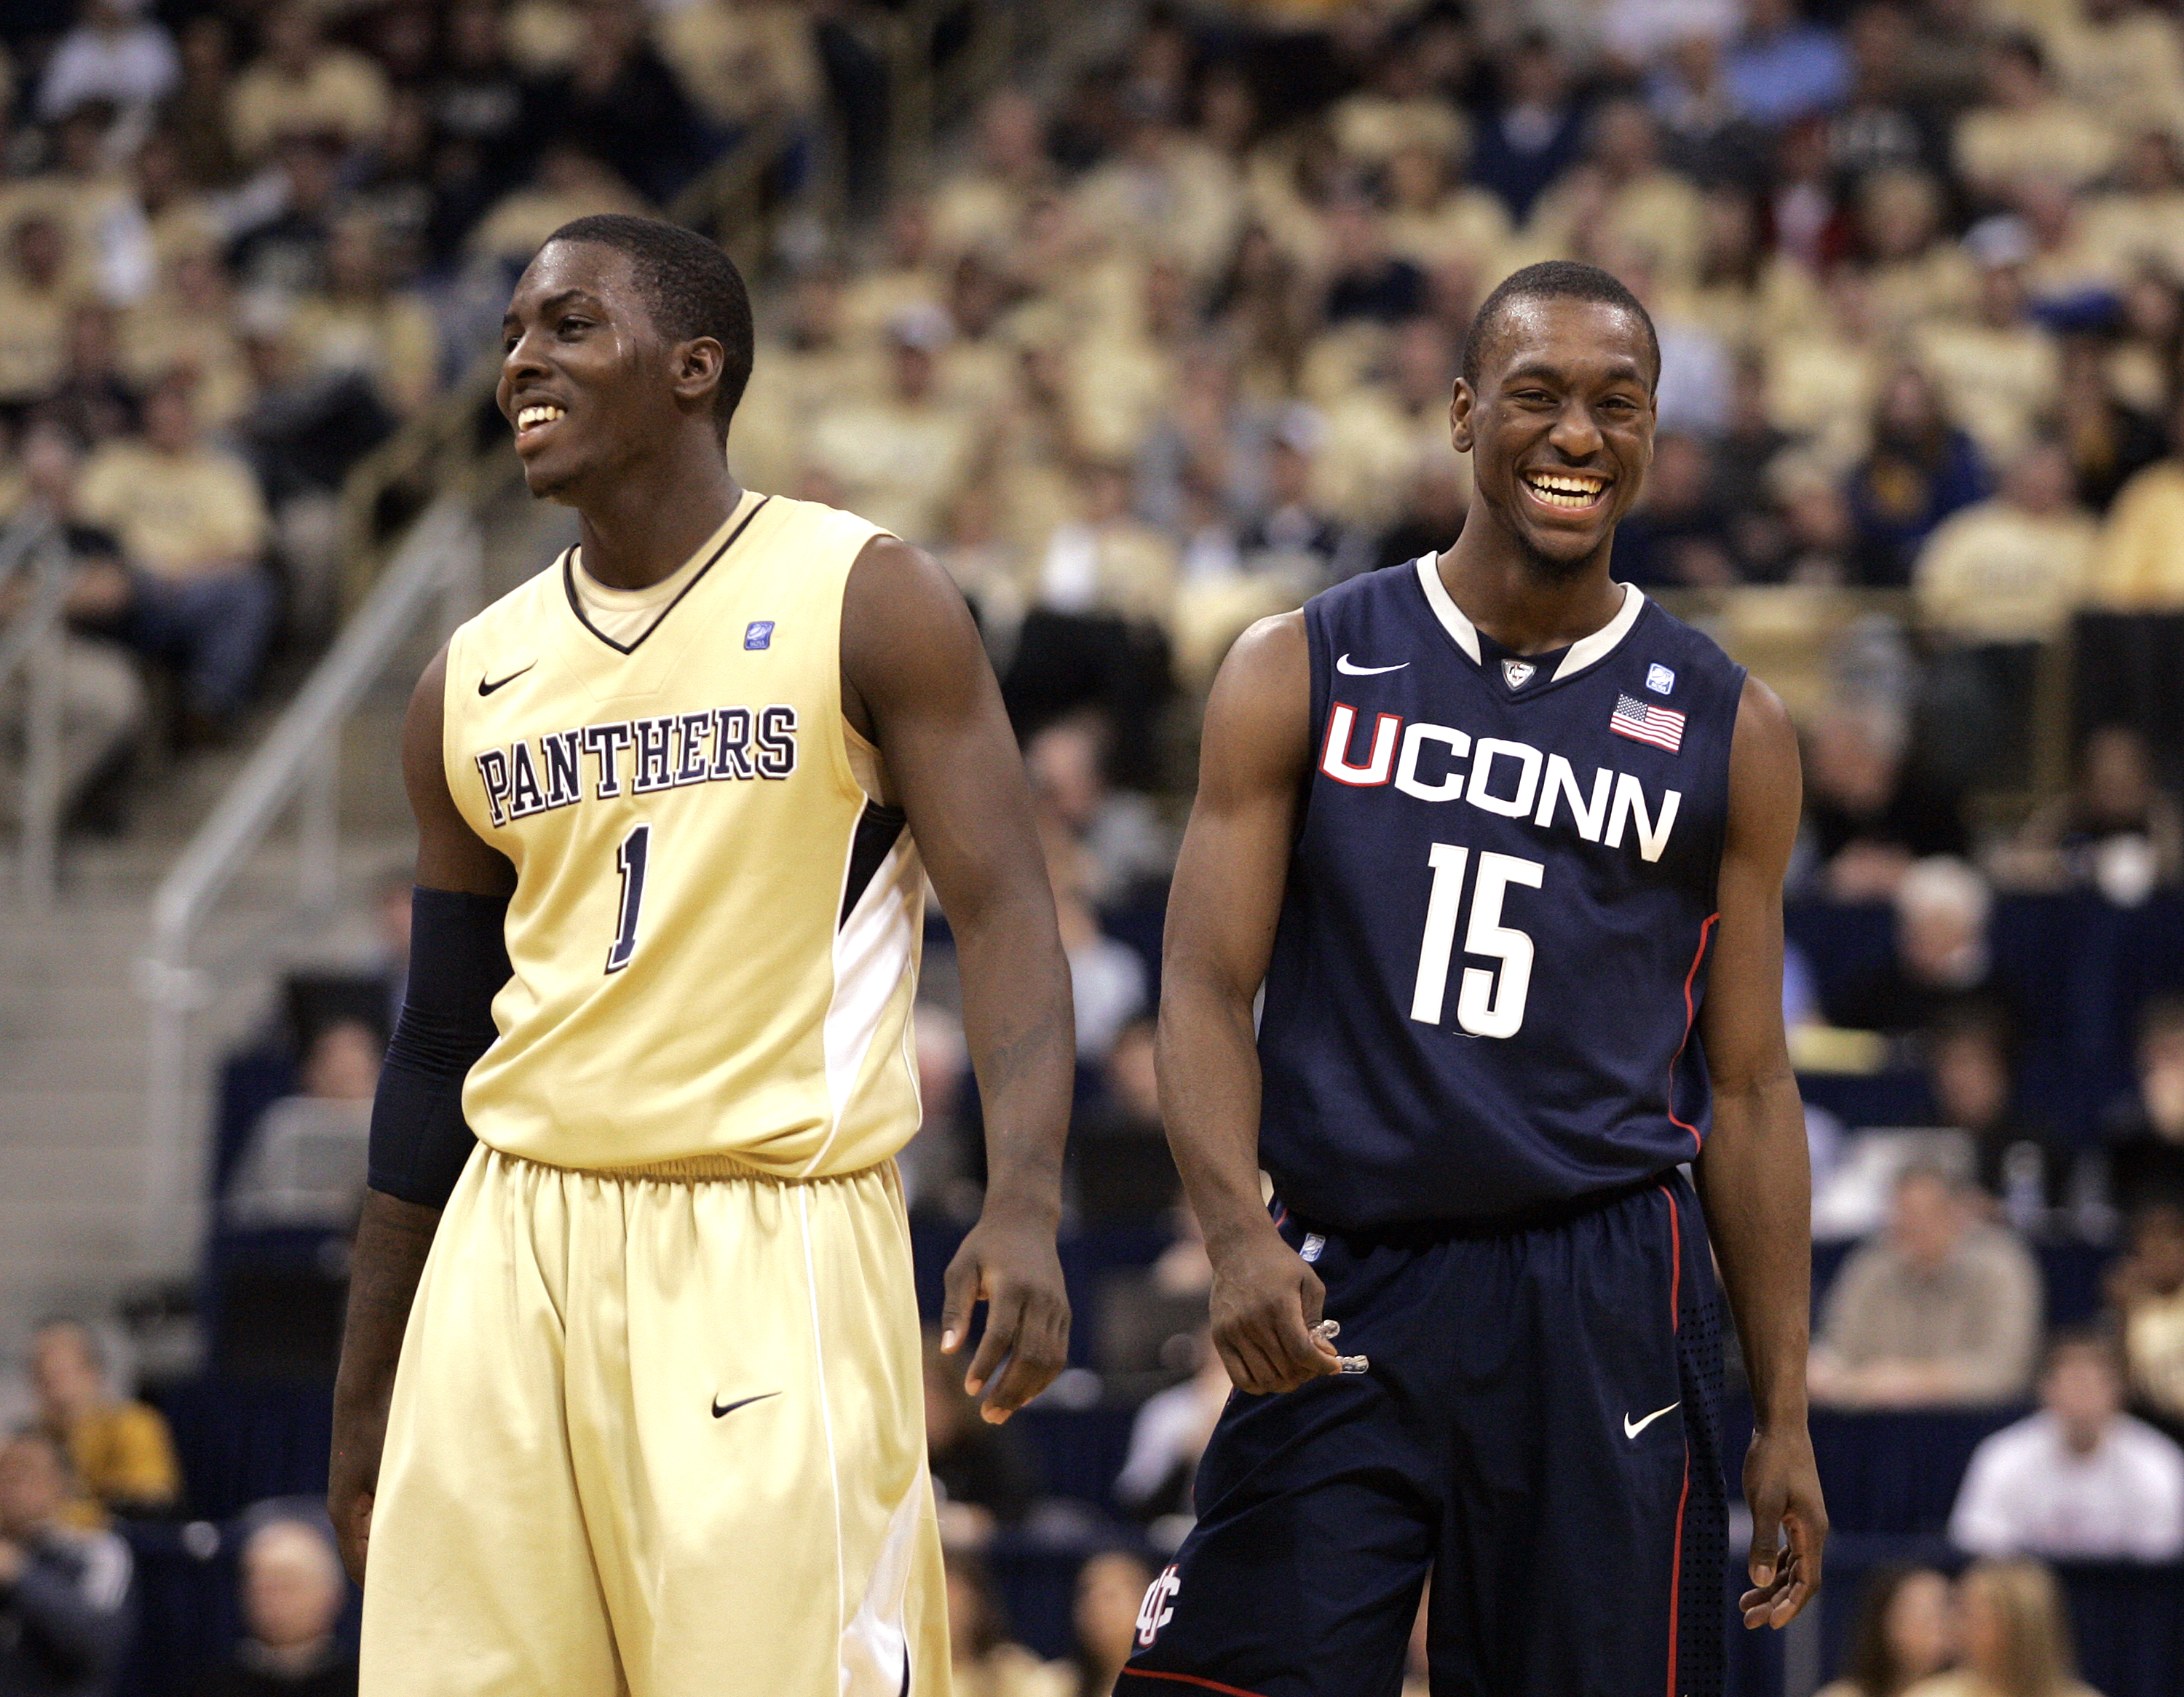 PITTSBURGH, PA - DECEMBER 27:  Travon Woodall #1 of the Pittsburgh Panthers and Kemba Walker #15 of the Connecticut Huskies have a laugh at Petersen Events Center on December 27, 2010 in Pittsburgh, Pennsylvania.  Pittsburgh defeated Connecticut 78-64.  (